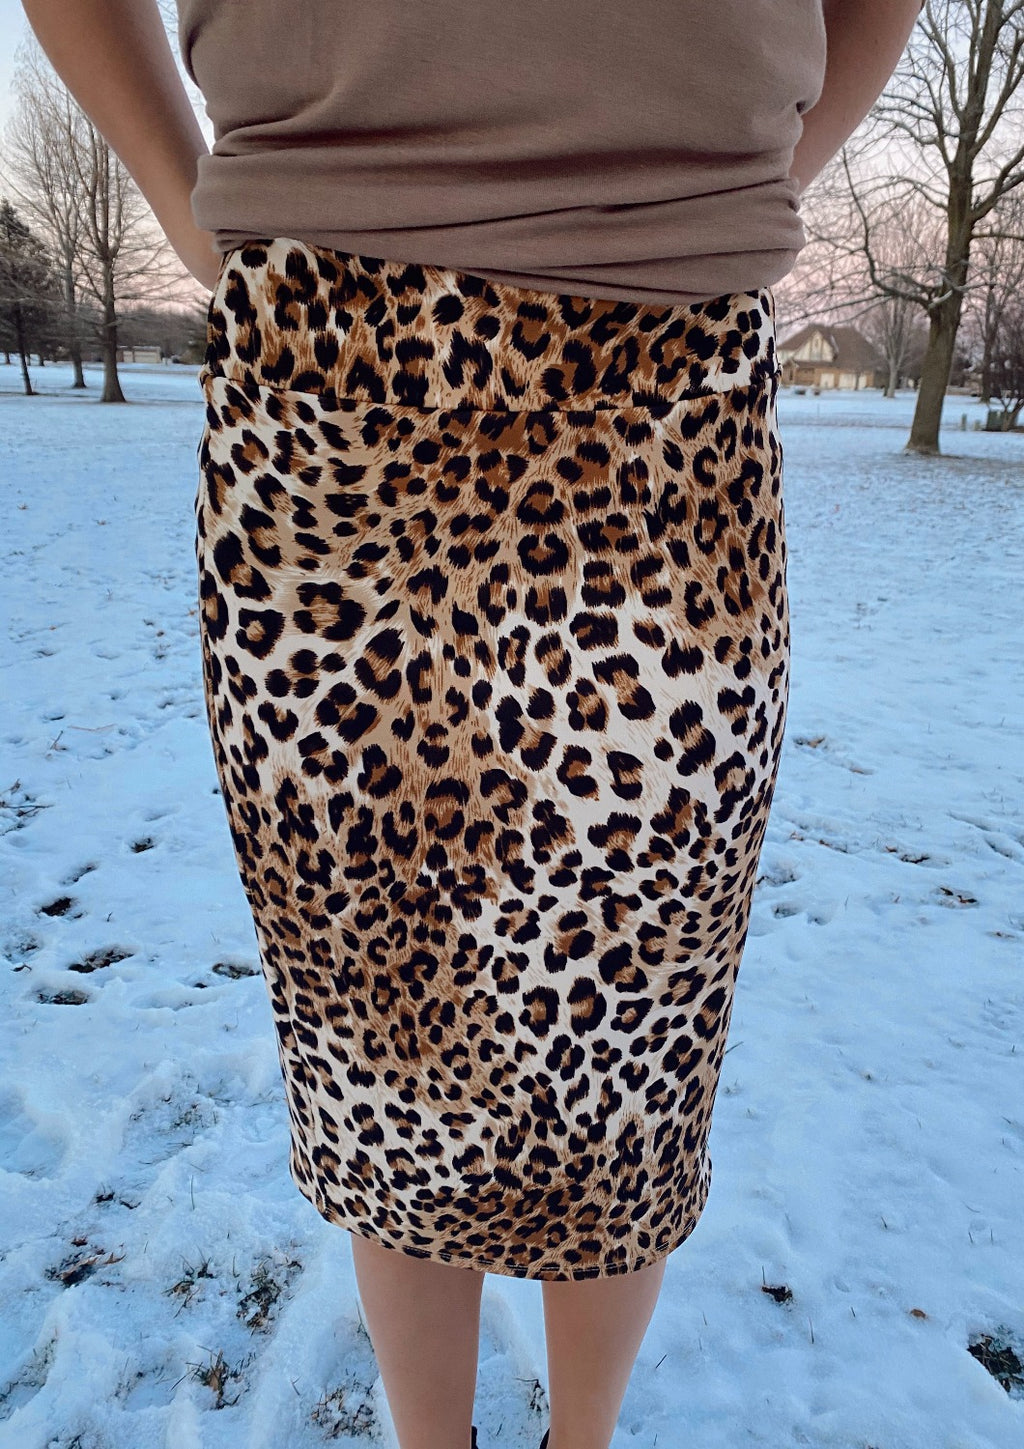 Cheetah #2 MD Skirt